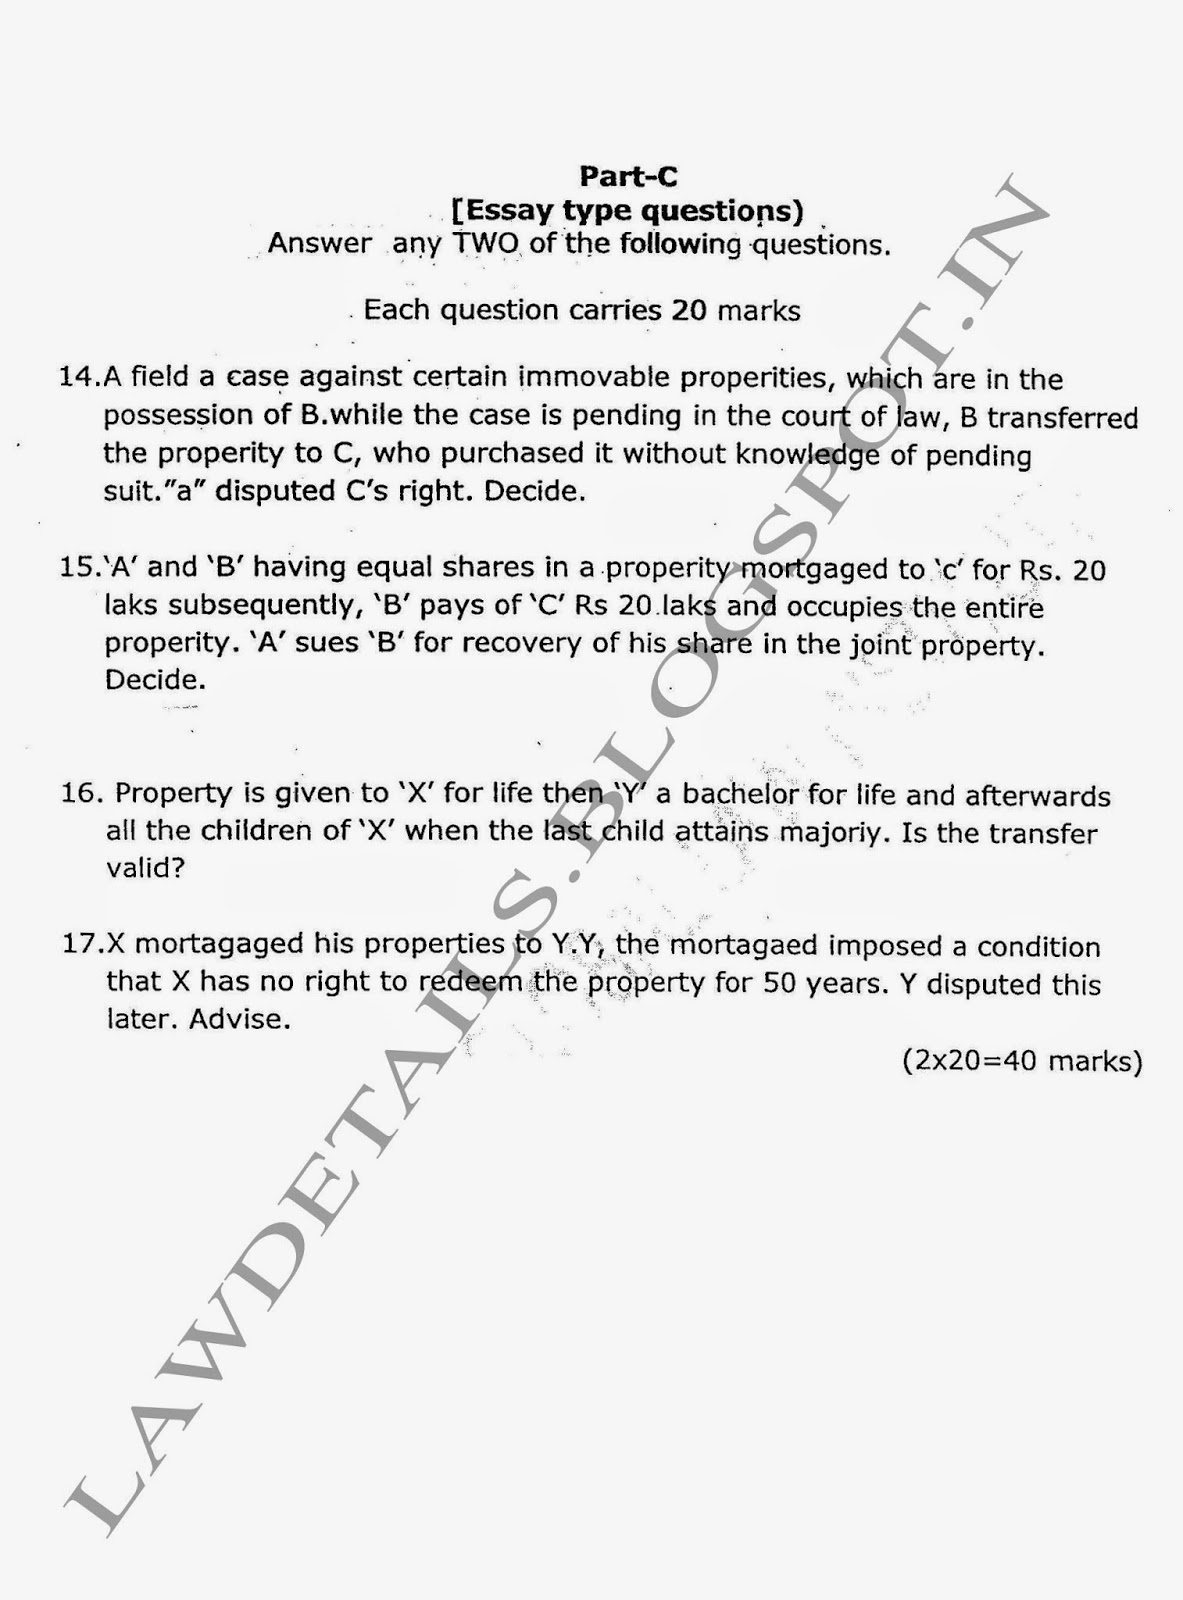 university of maryland essay questions